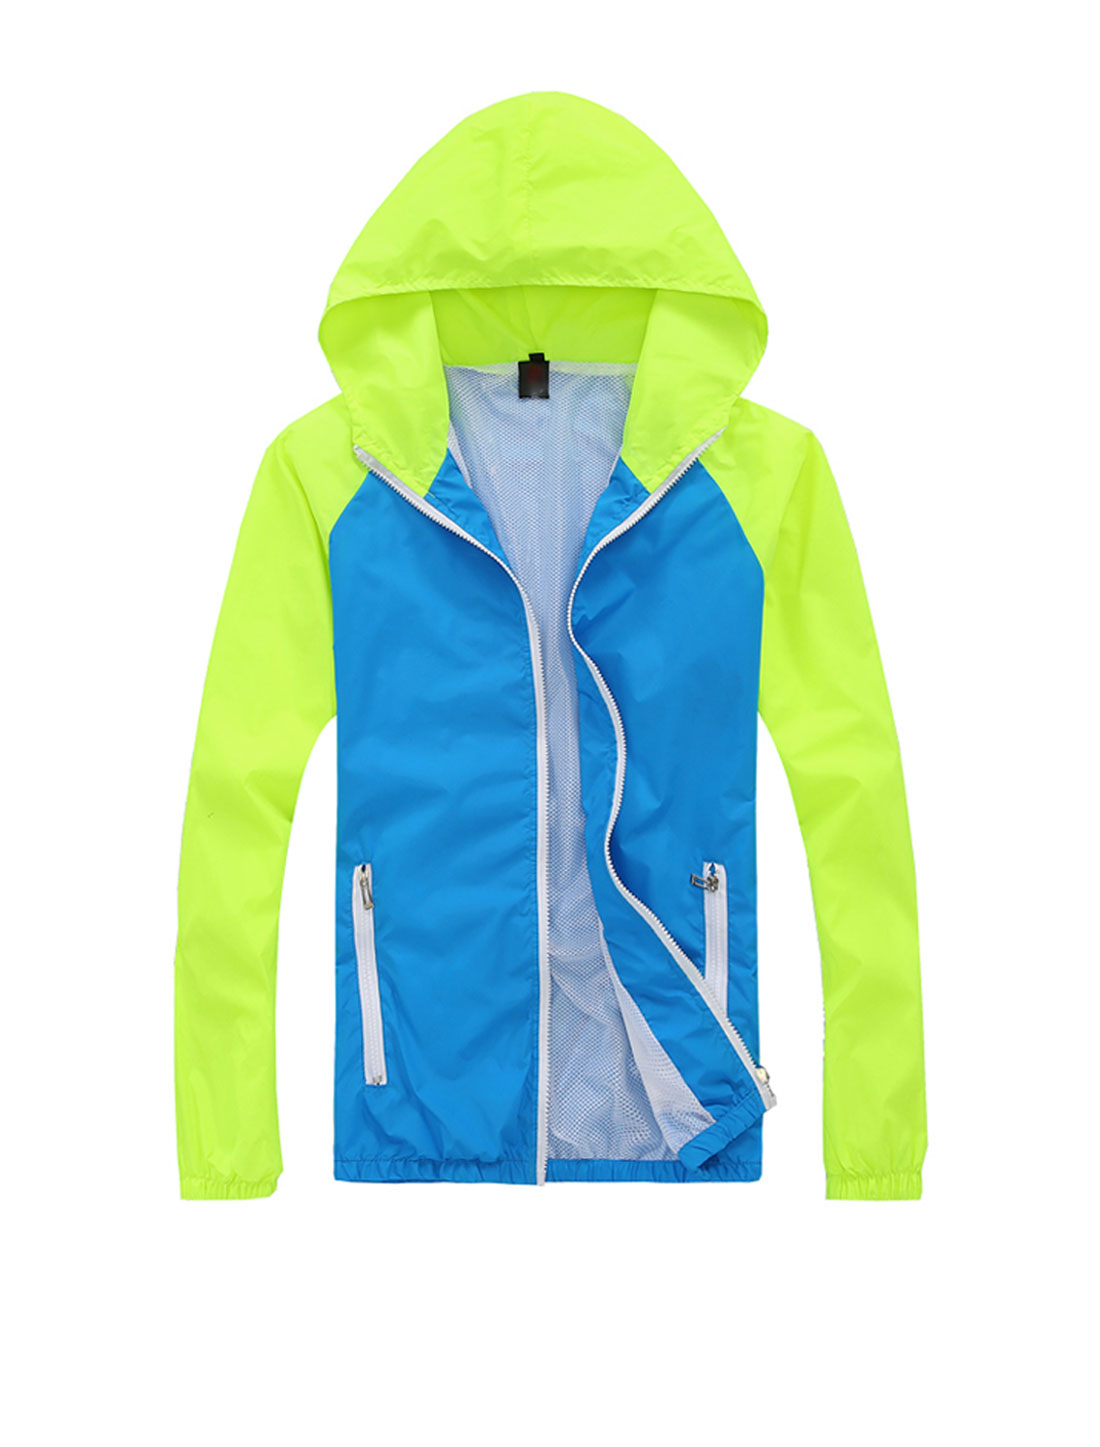 Man Contrast Color Zip Closure Hooded Windbreaker Green Yellow Blue M